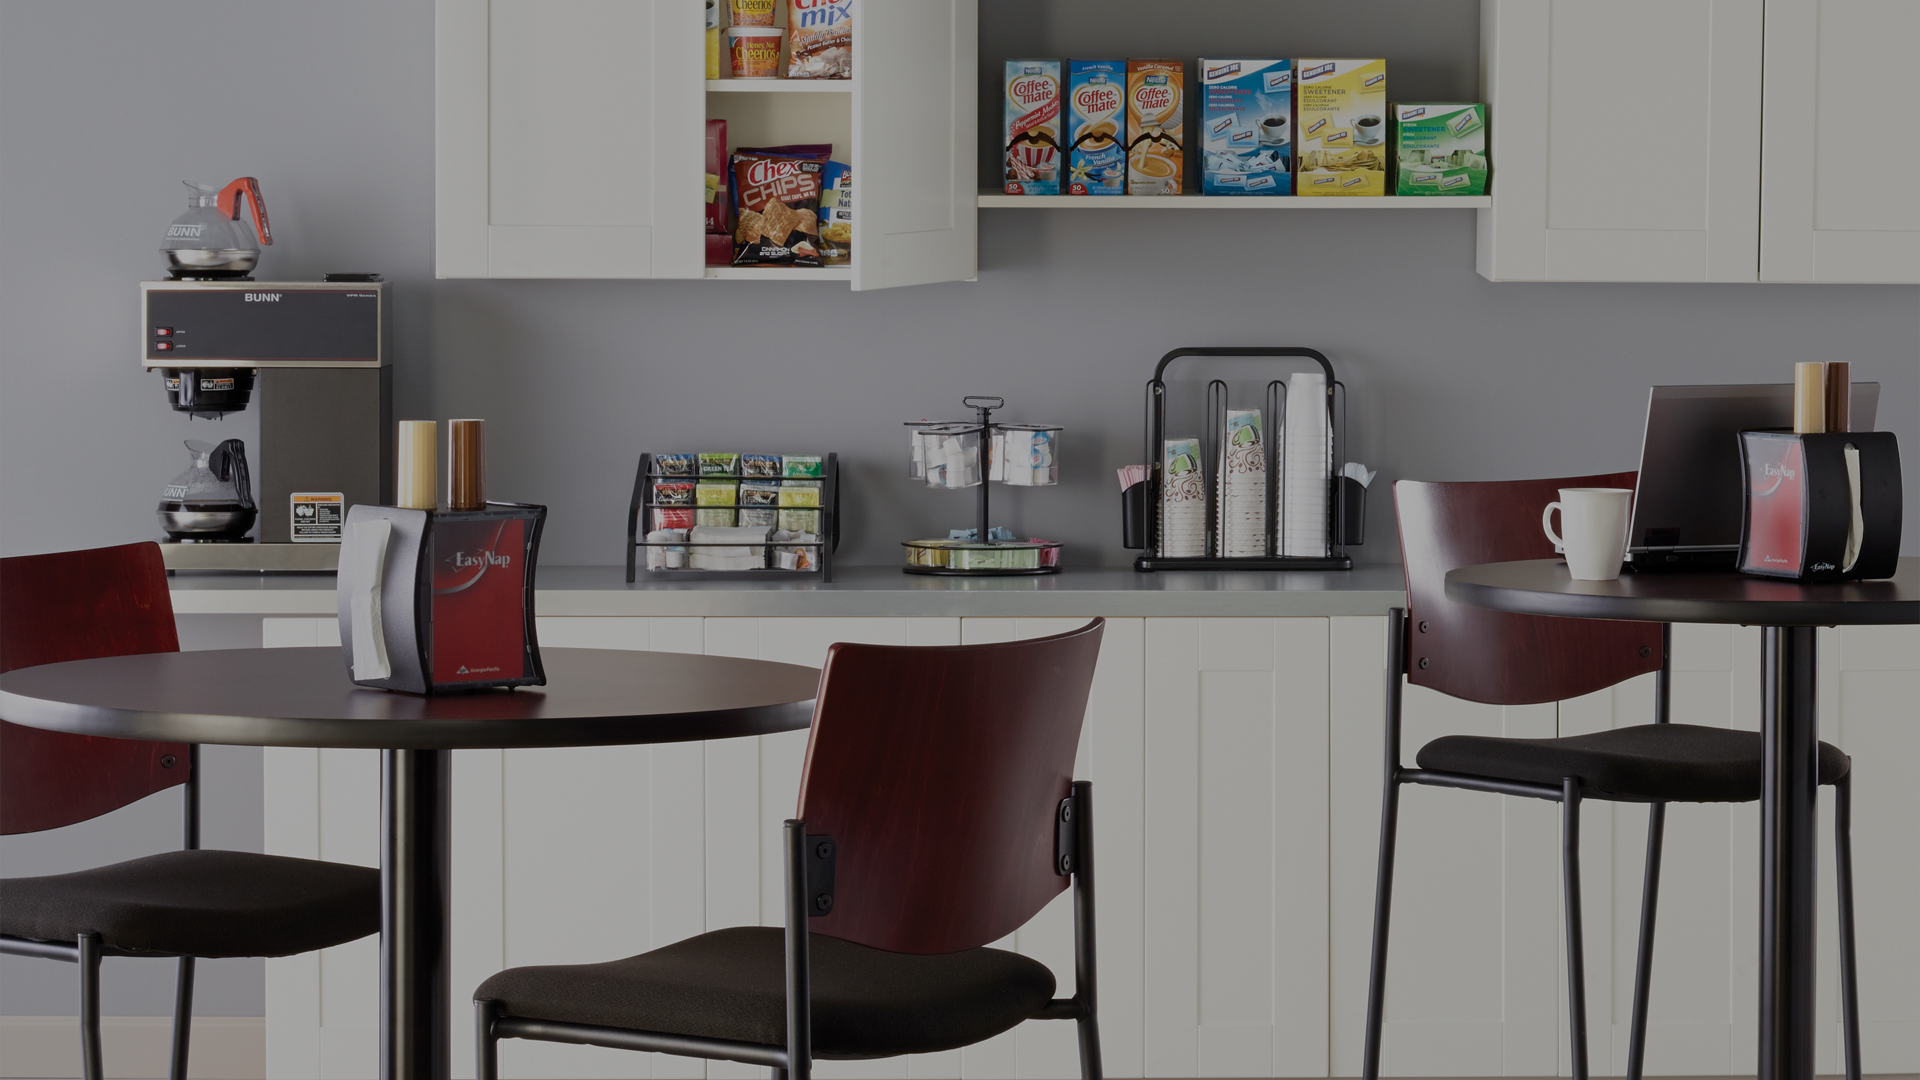 regency business solutions break room furniture cleaning. Black Bedroom Furniture Sets. Home Design Ideas